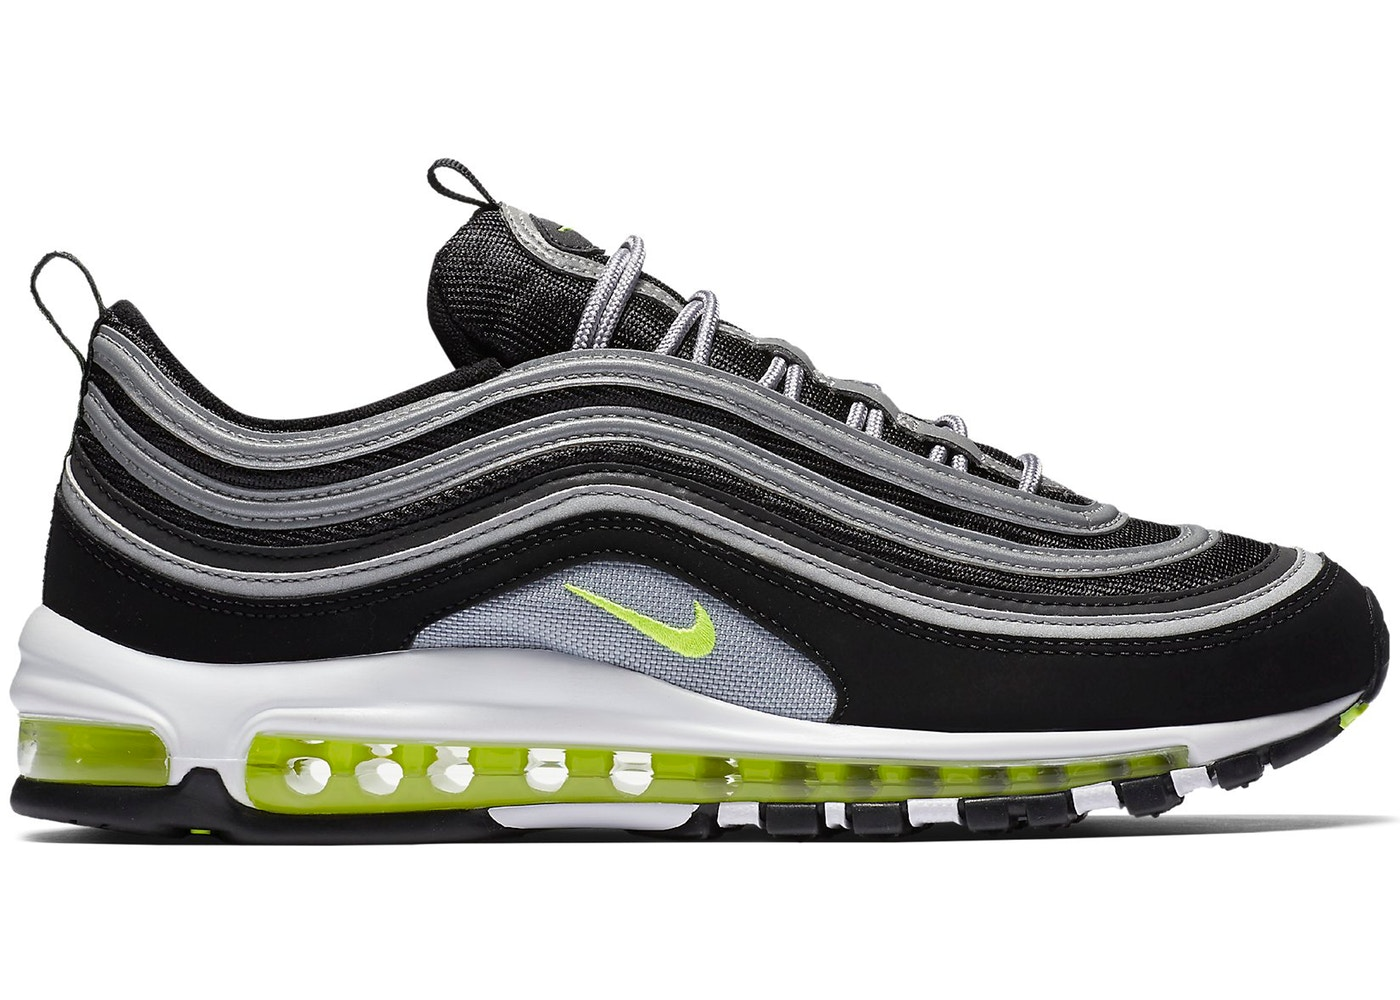 Look Out For The Nike Air Max 97 Neon • KicksOnFire